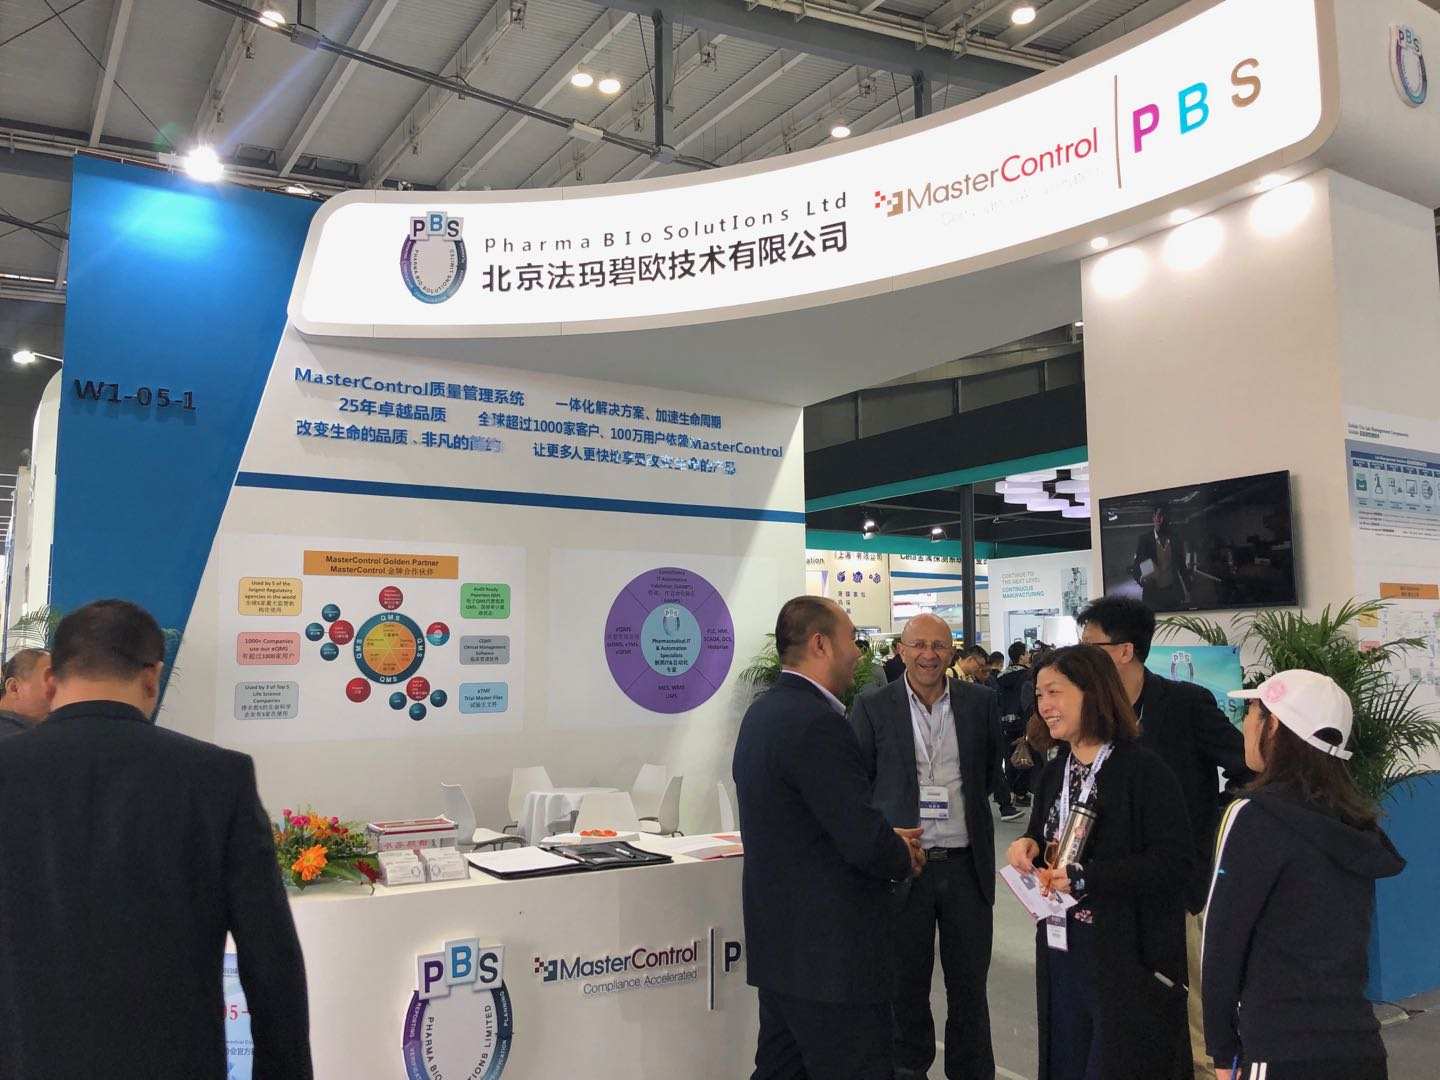 PBS participates in 2019 (Spring) China International Pharmaceutical Machinery Exhibition